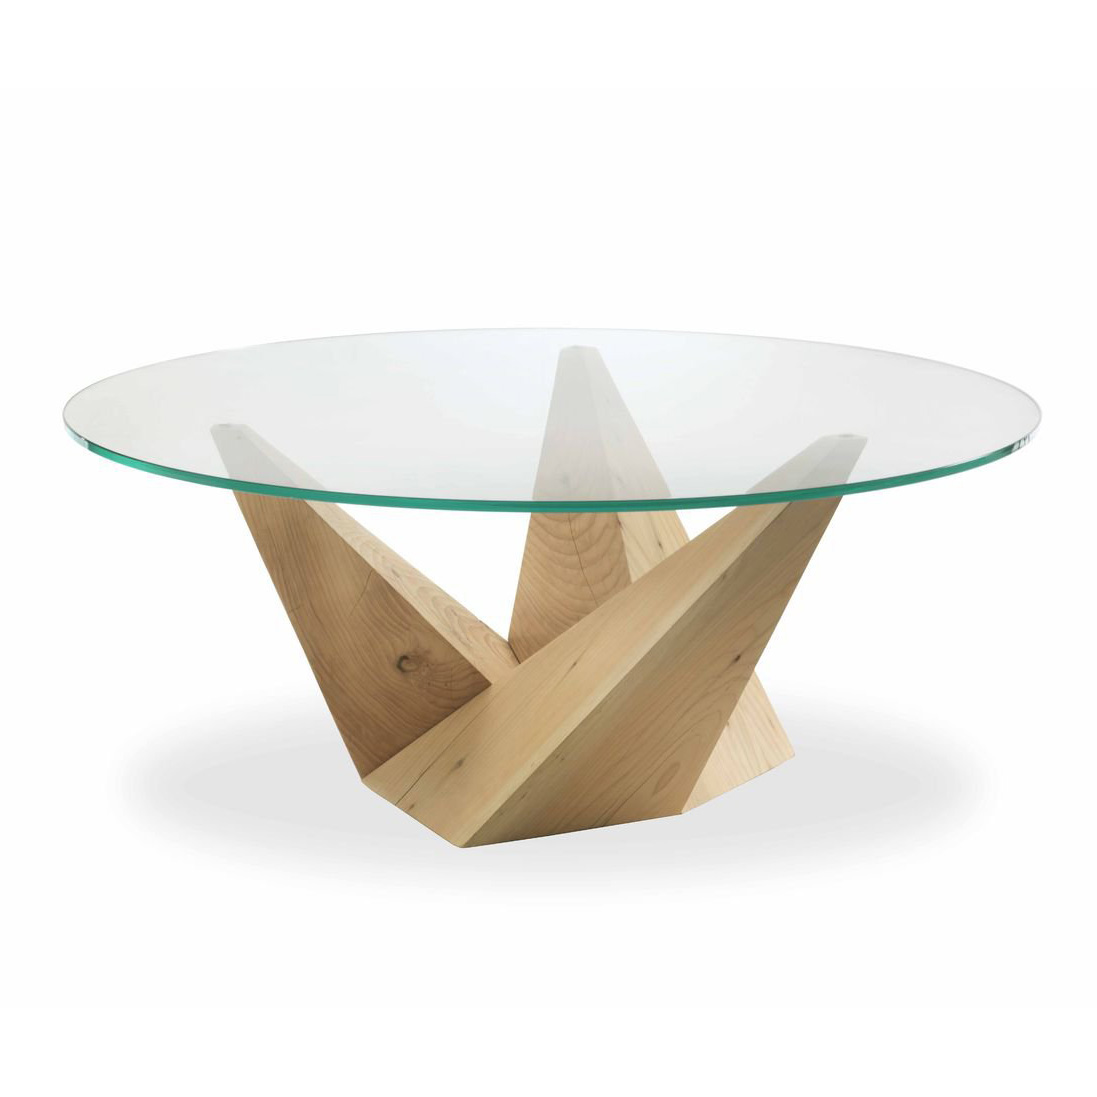 Peak dining table from Riva 1920